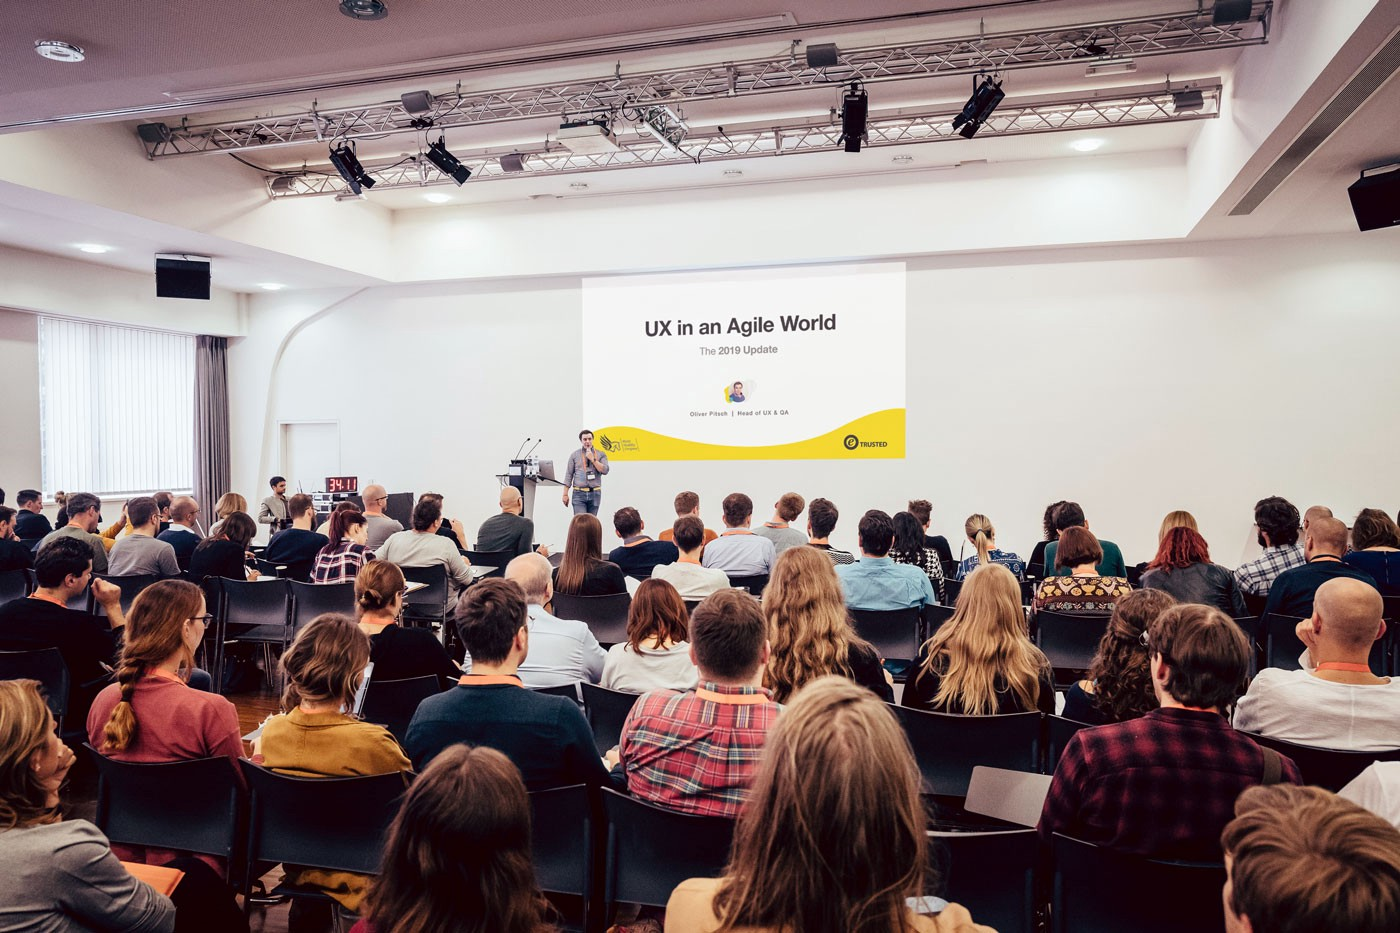 Oliver Pitsch presenting his talk UX in an Agile World at World Usability Congress 2019 in Graz, Austria